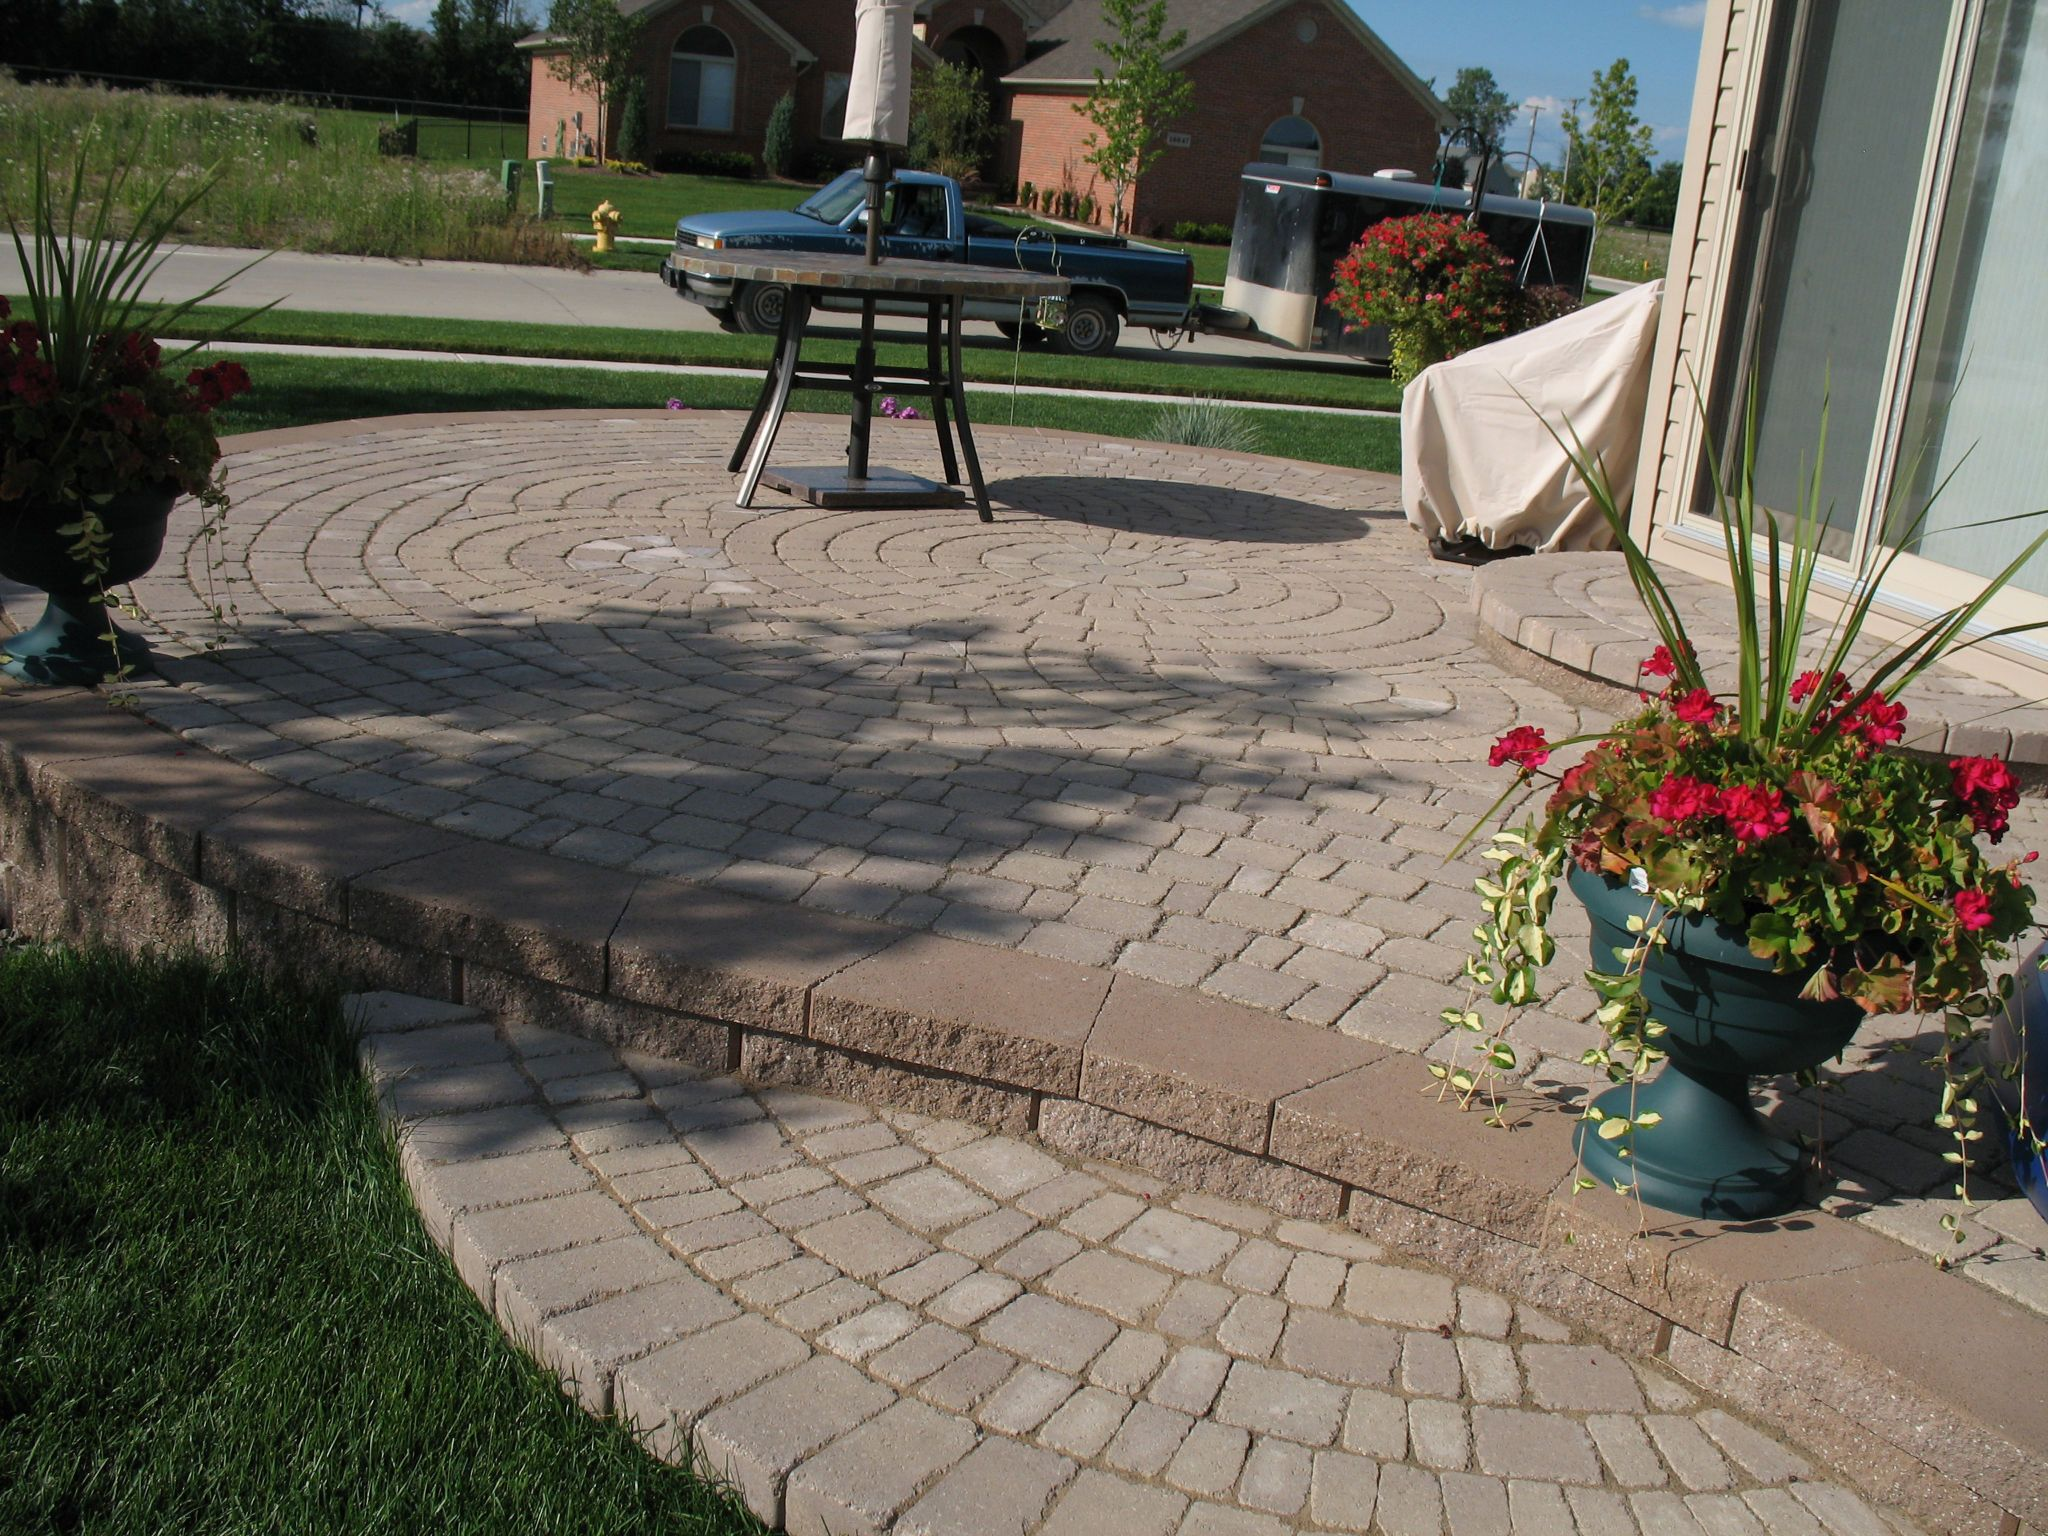 Well Groomed Curved Pavers Home Depot For Innovative Modern Patio Decor